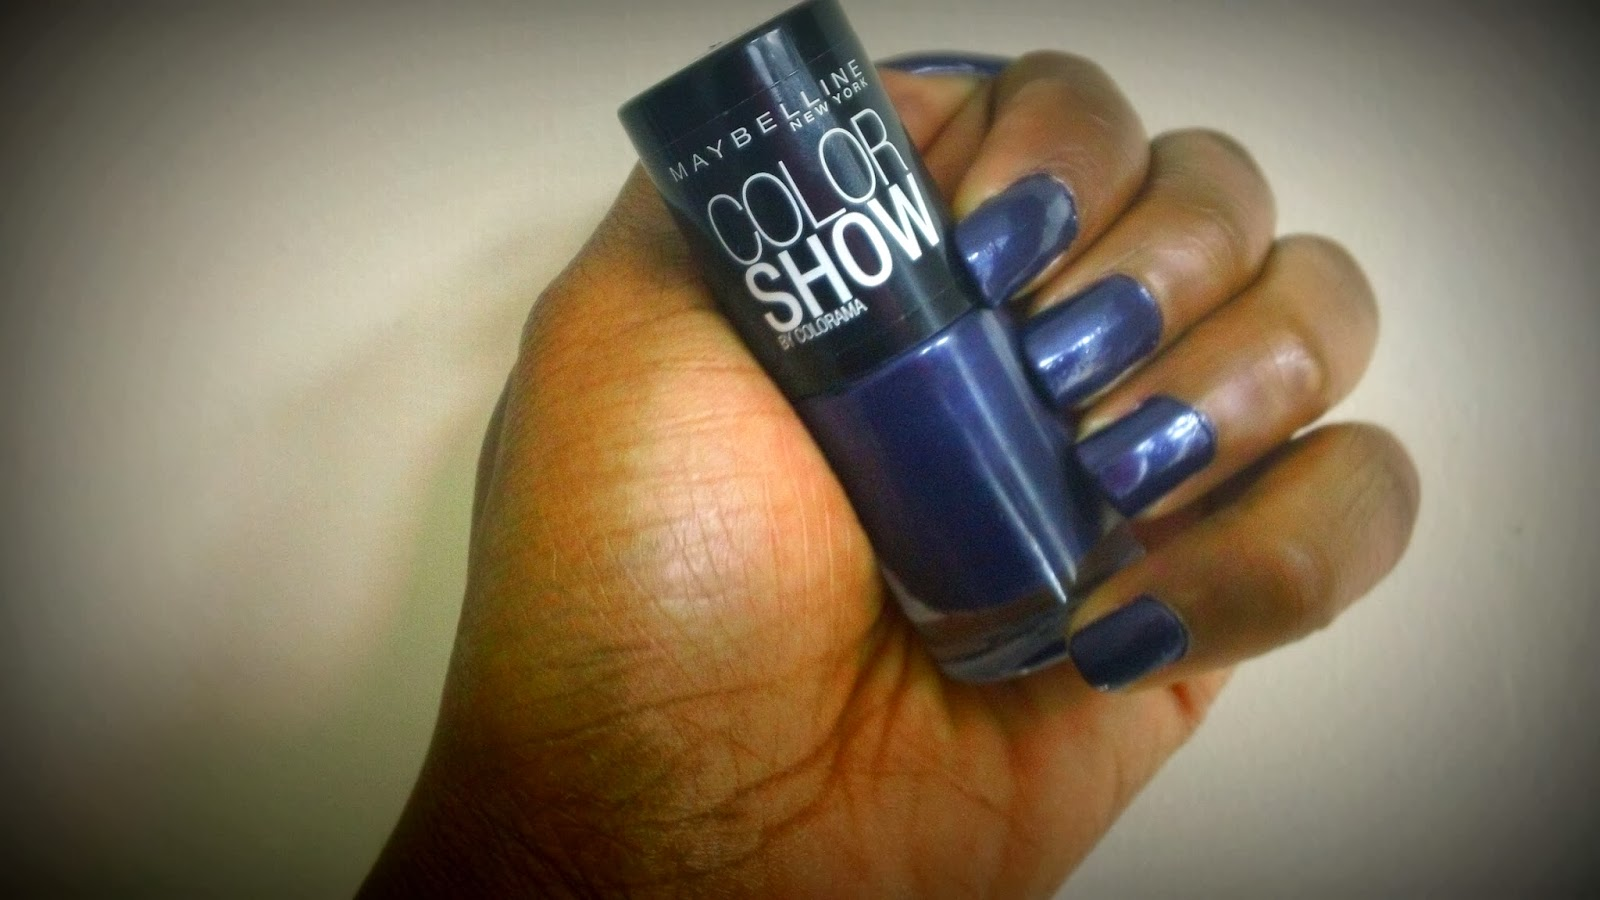 Maybelline Color Show, Gel based Nail Polish, Nail Polish, Nail Polish Reviews, Maybelline